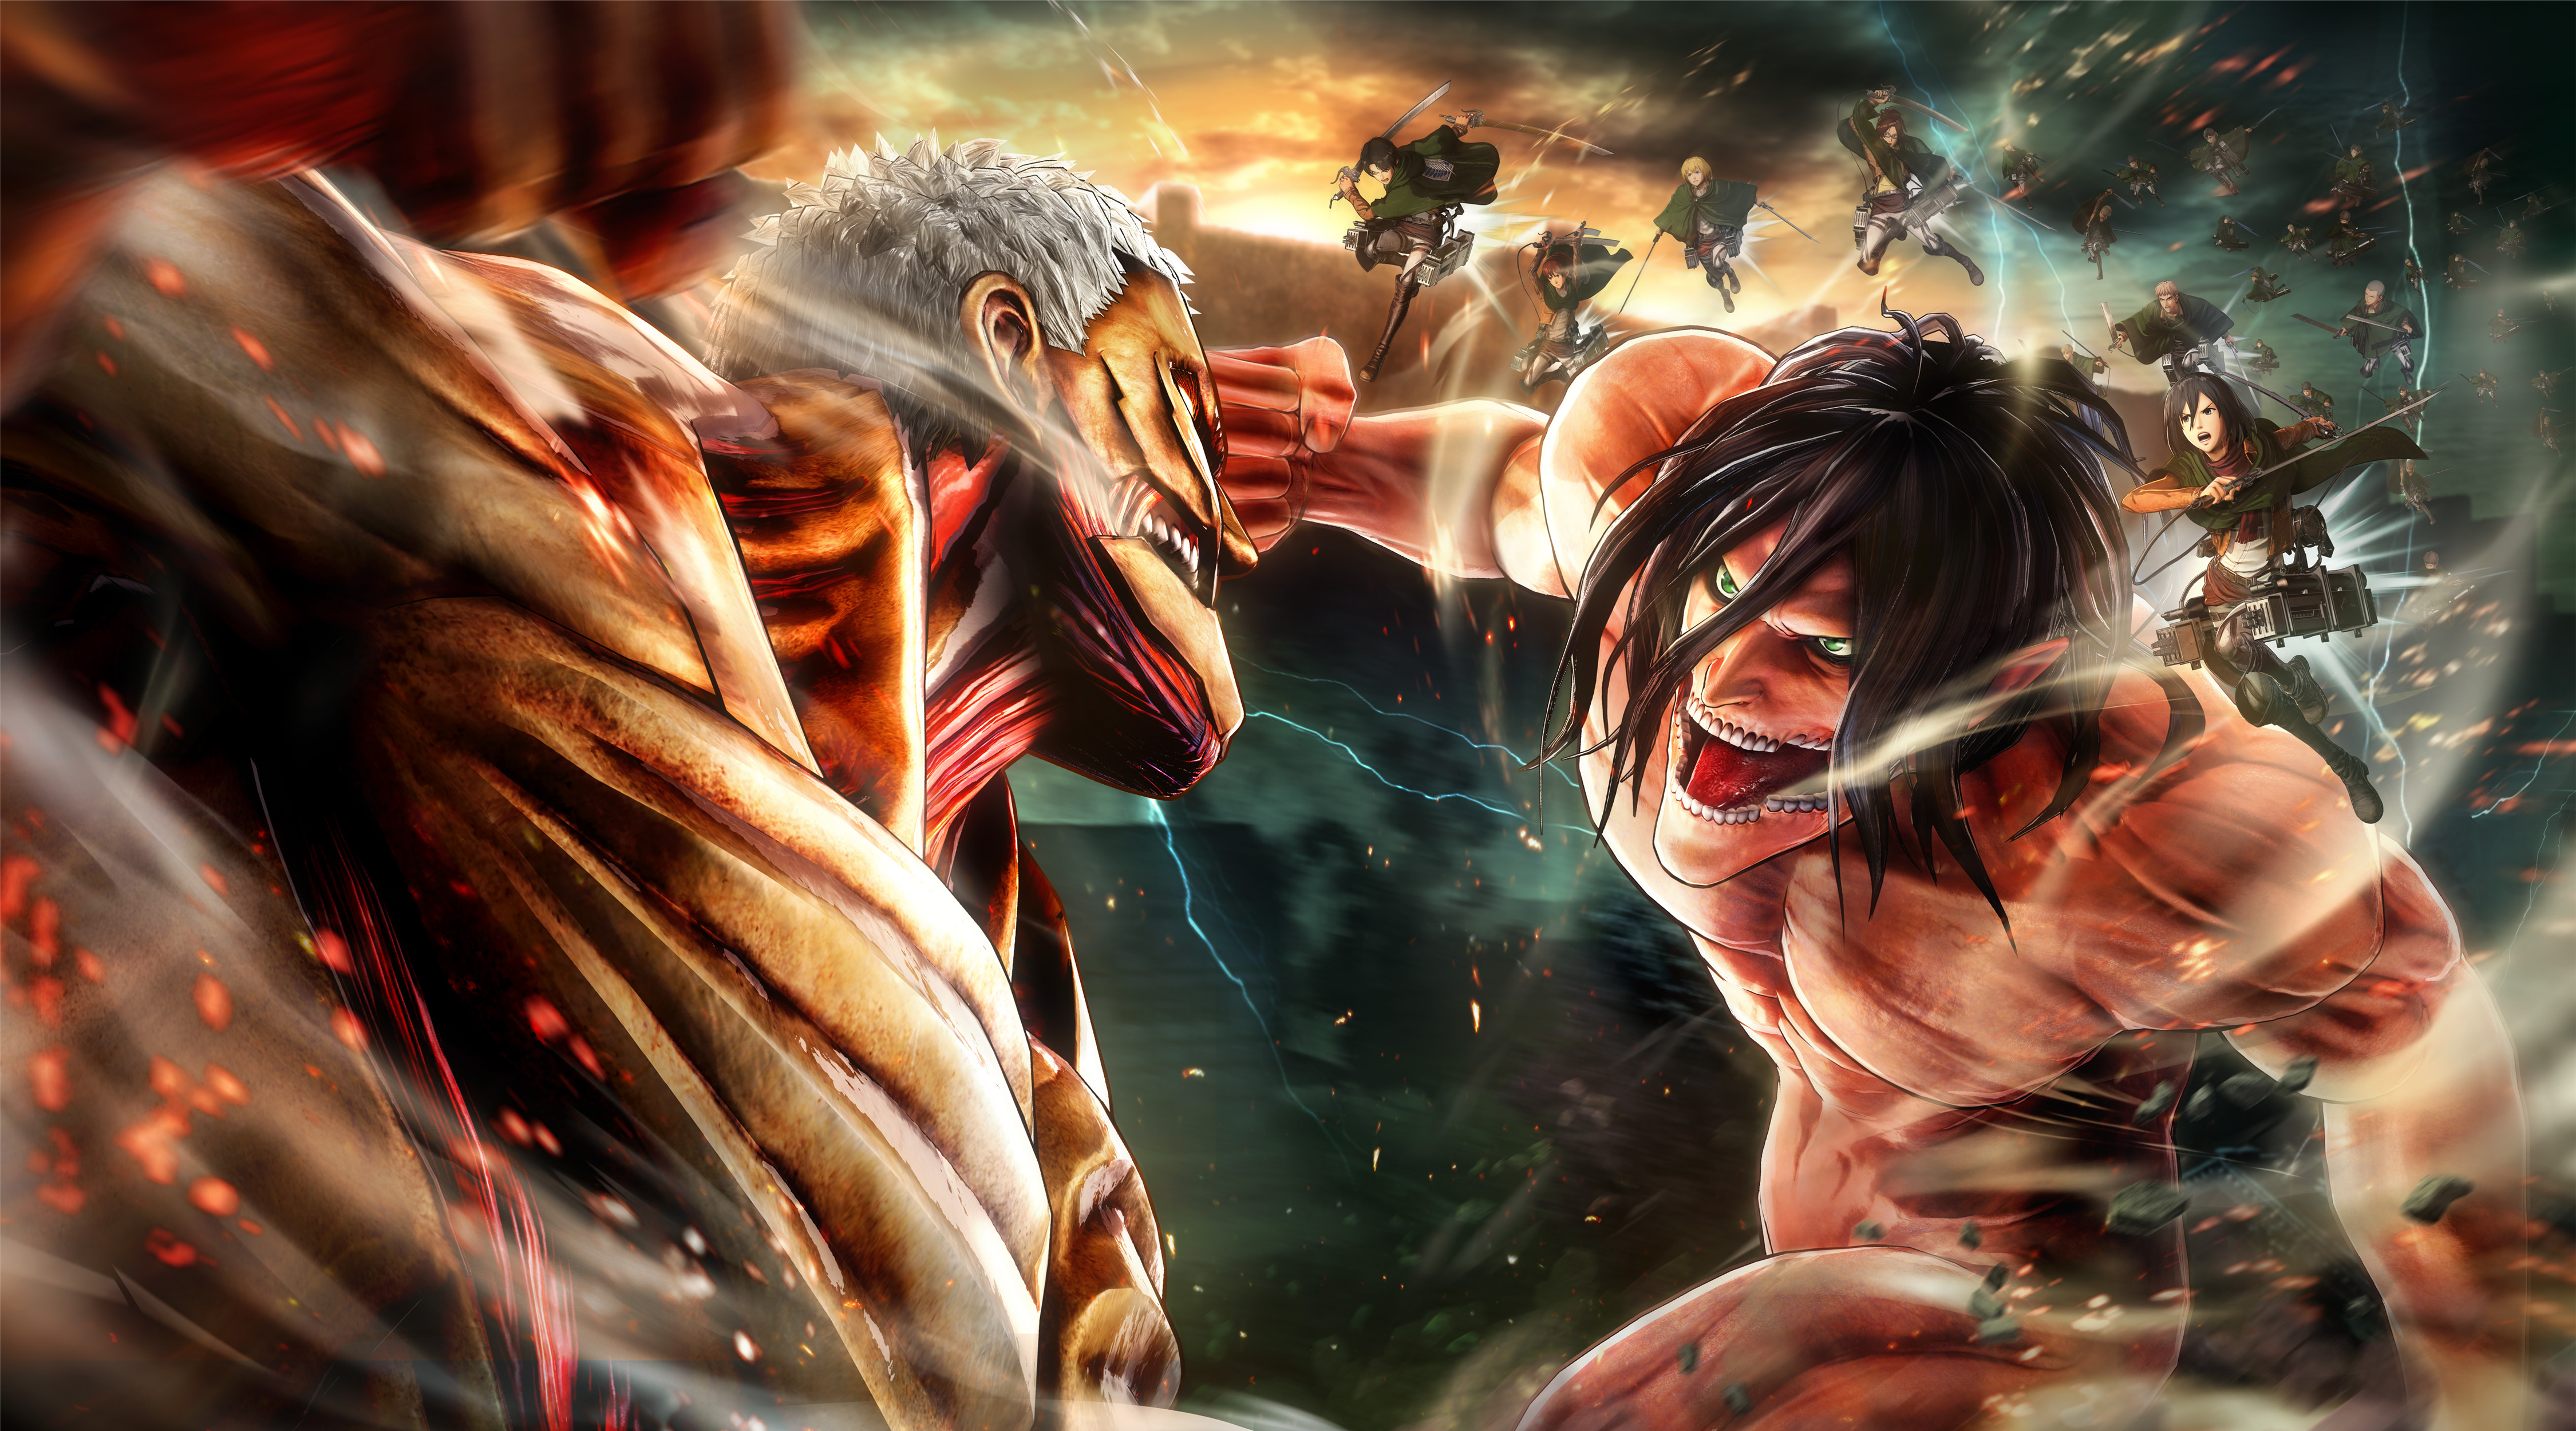 Wallpaper 1920x1080 Attack On Titan